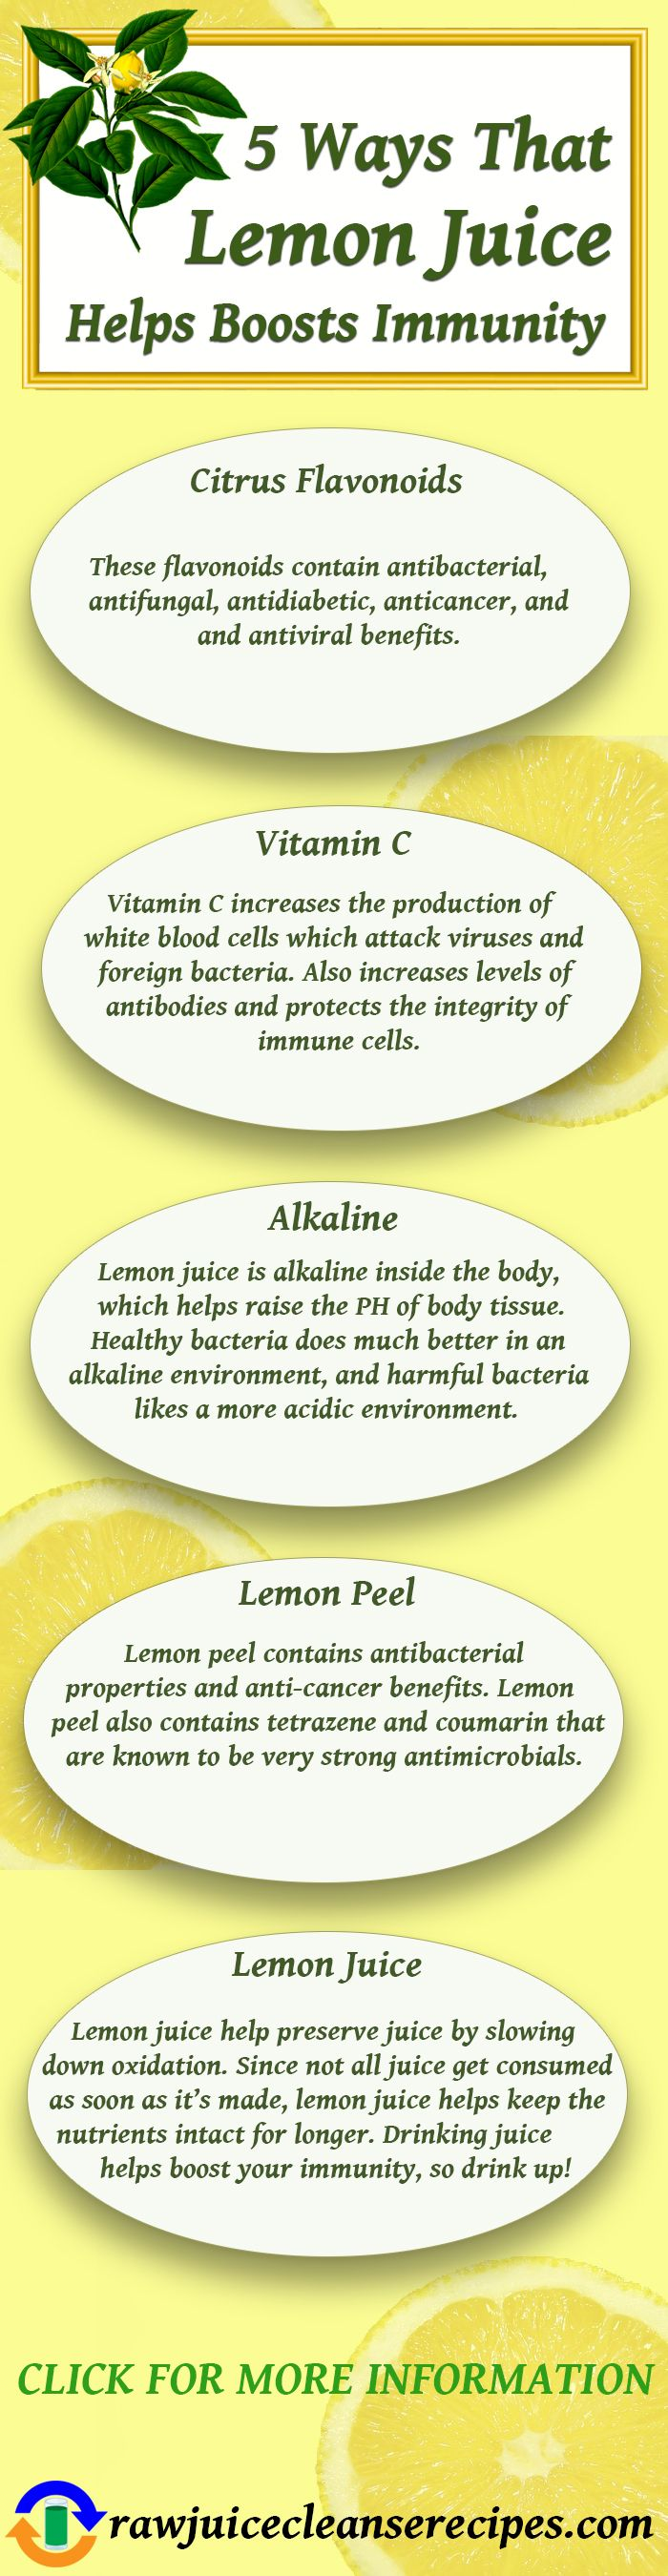 5 Ways That Lemon Juice Helps Boost Immunity! Stay well, and get more info as well as try some of the juice recipes that include lemon juice in them on the page.